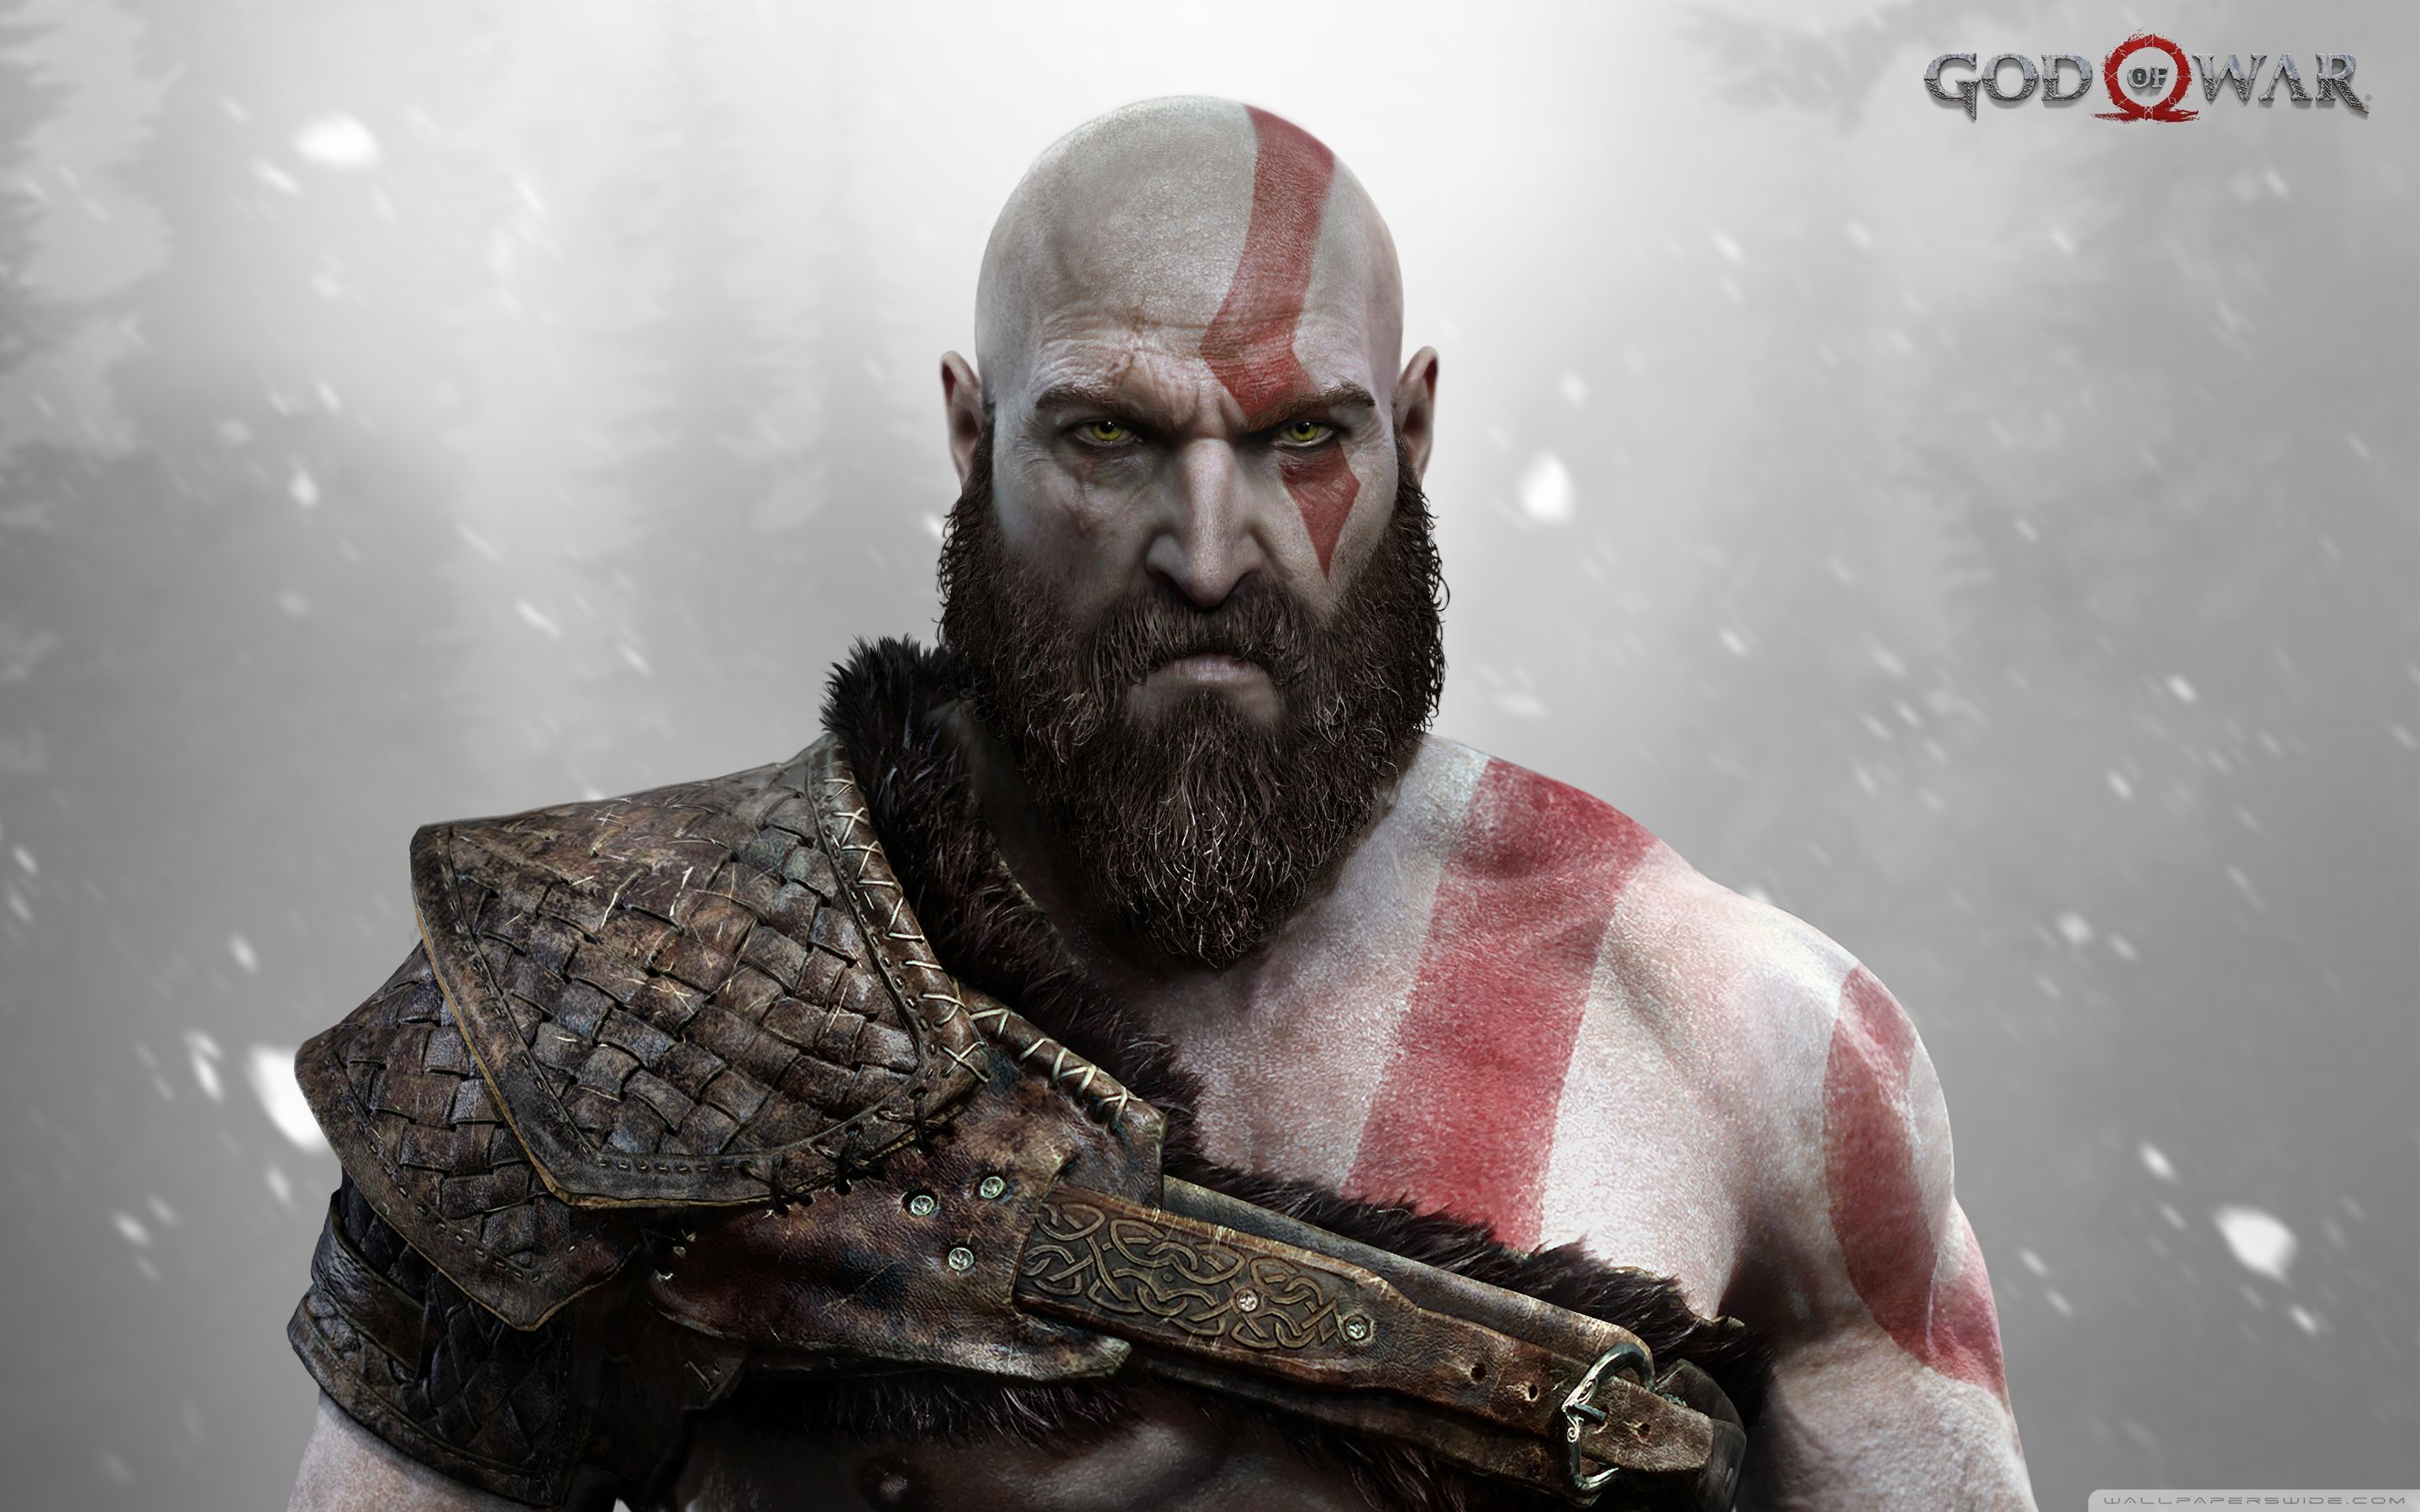 God Of War 2016 Wallpapers Top Free God Of War 2016 Backgrounds